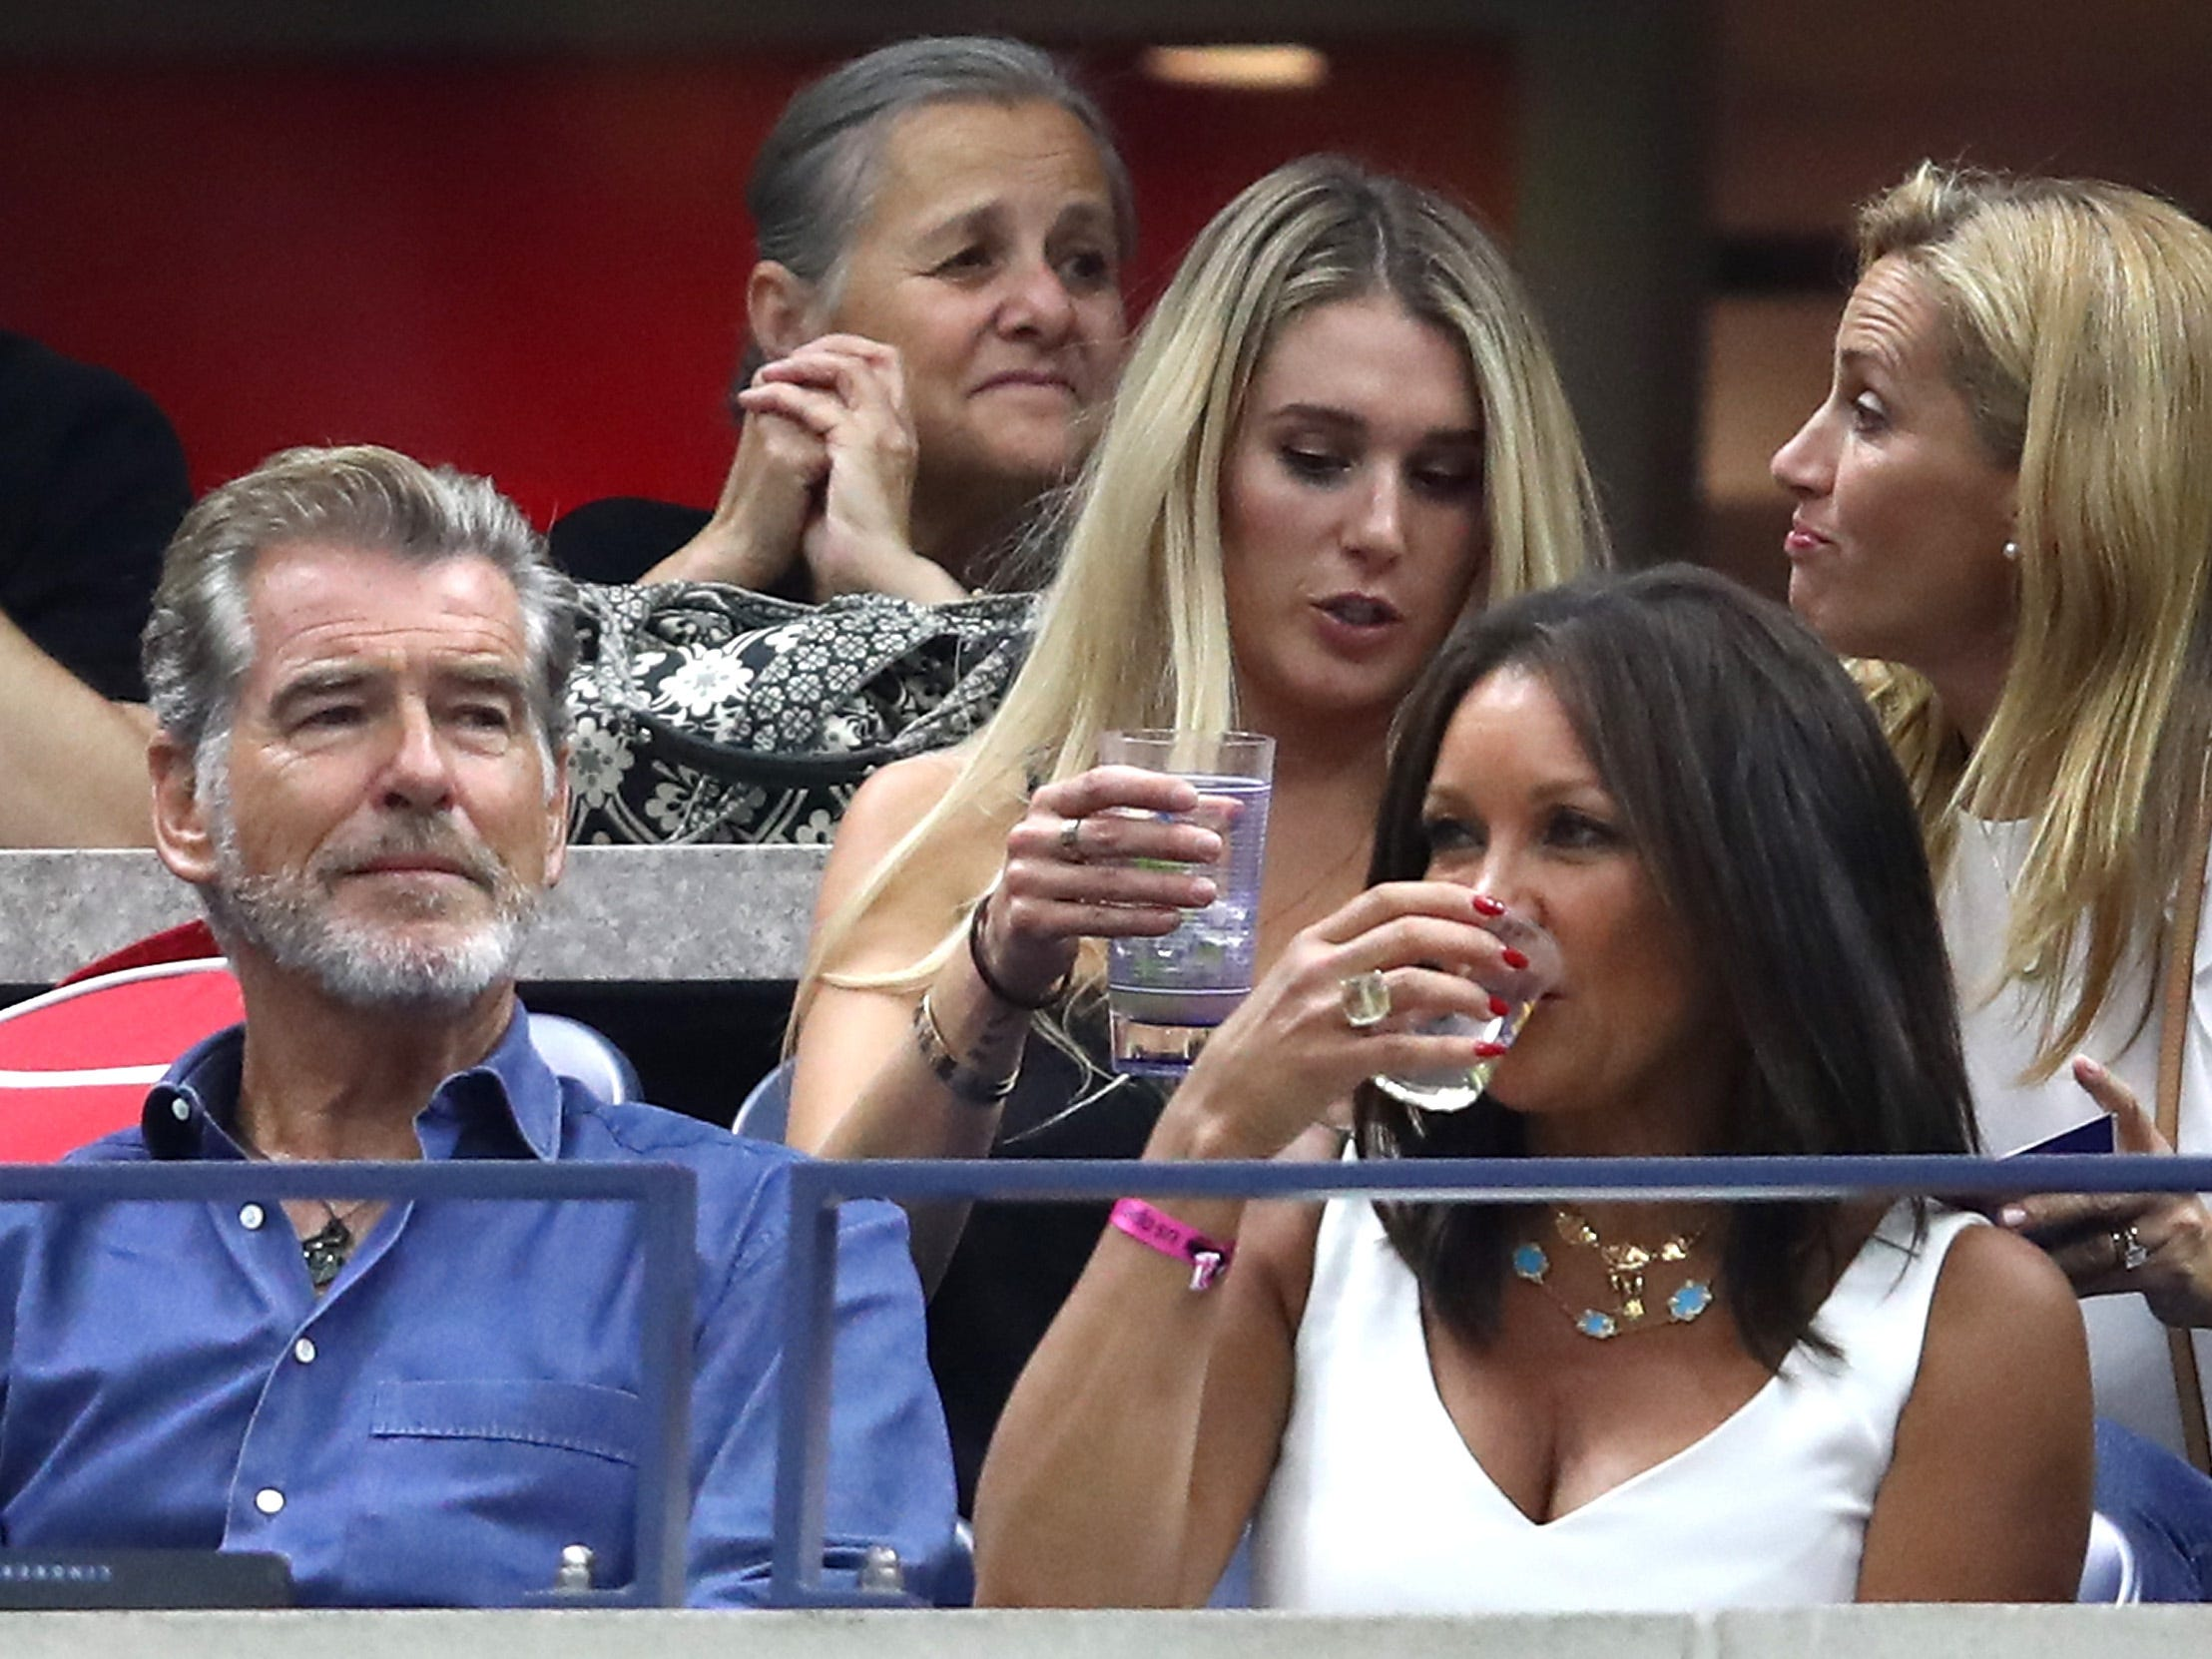 Actor Pierce Brosnan, front left, and actress/singer Vanessa Williams, second from left, watch the women's final between Serena Williams and Naomi Osaka.